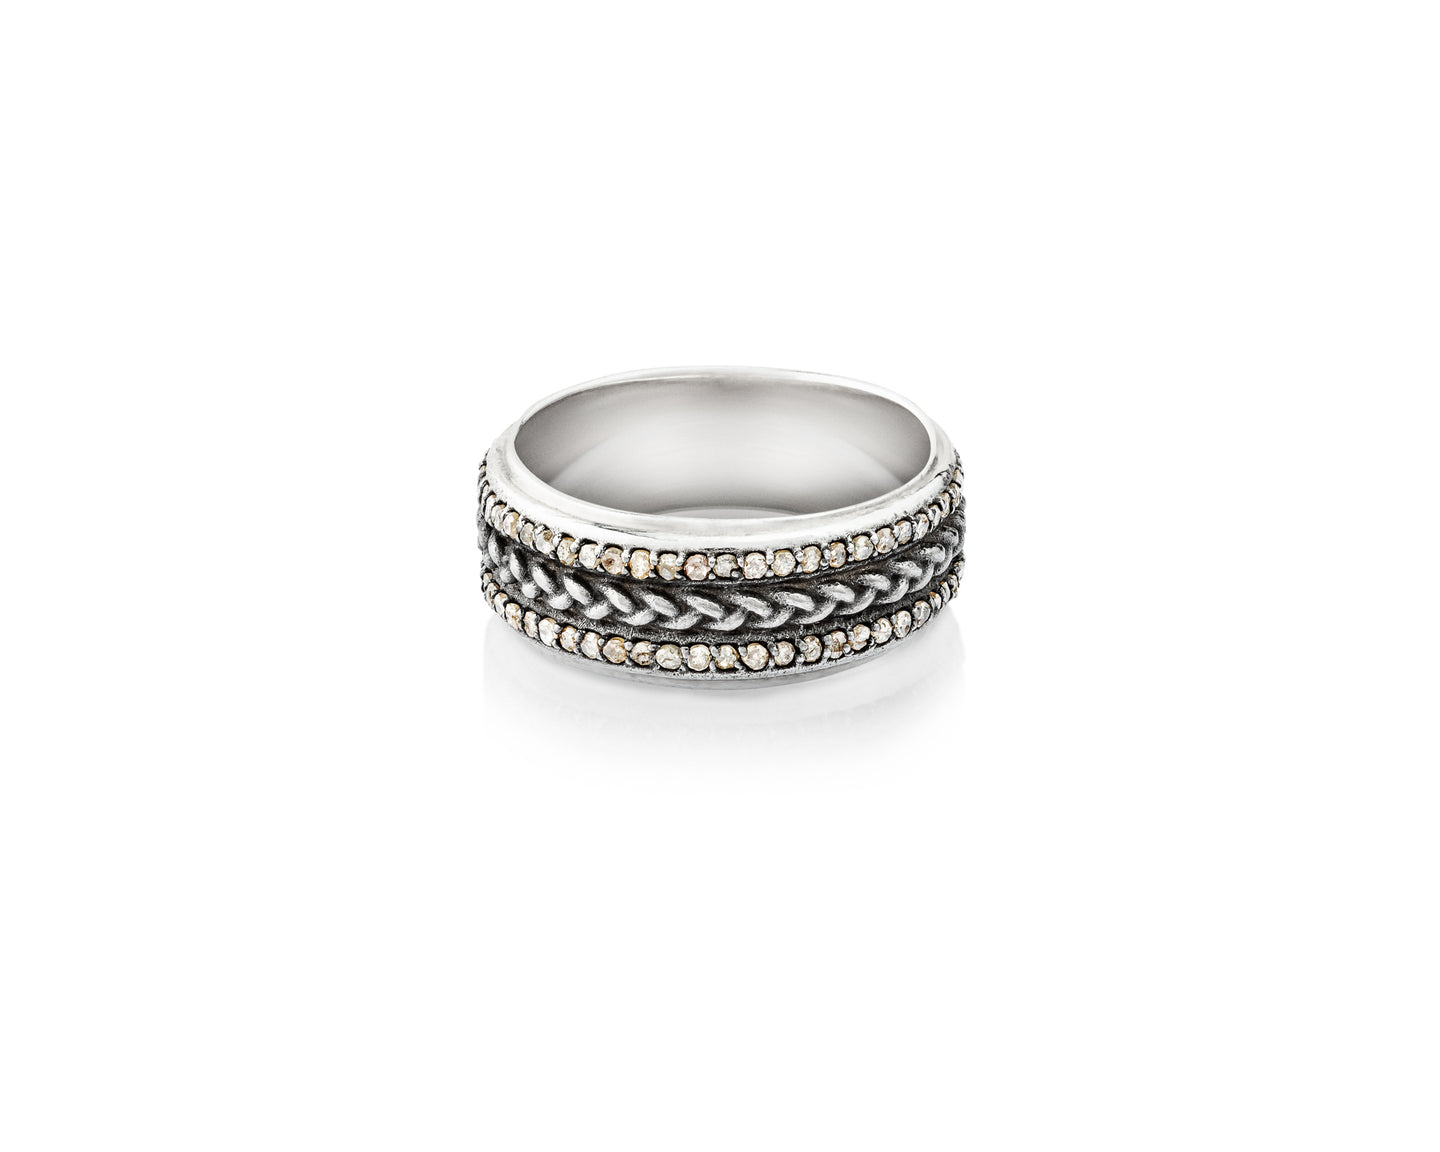 Vincent Peach's signature sterling silver braid flanked by two rows of pavé diamonds.